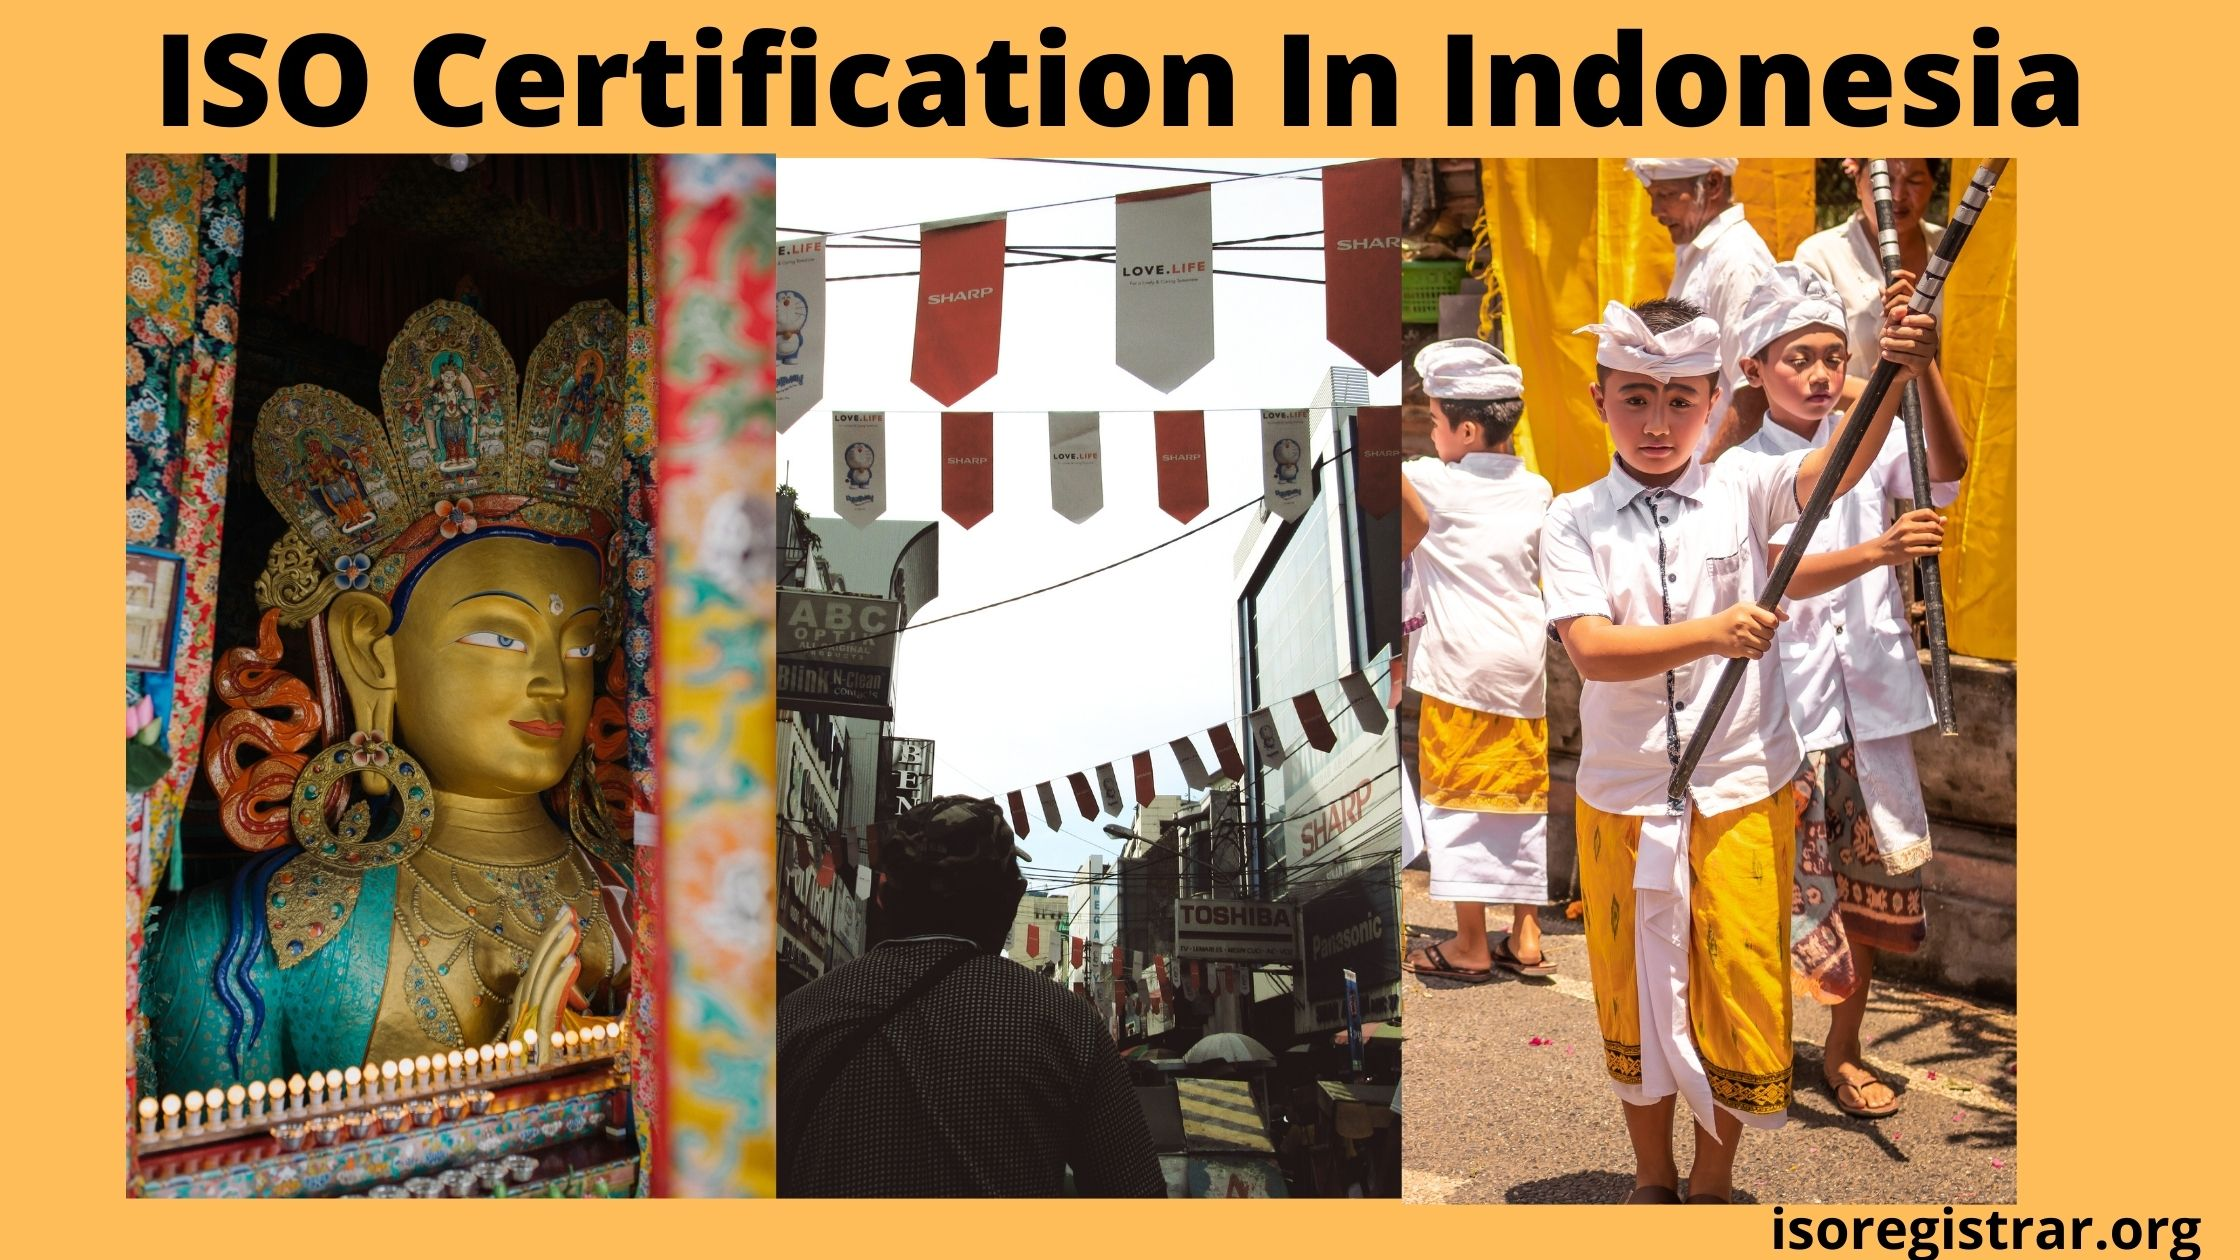 ISO certification in Indonesia